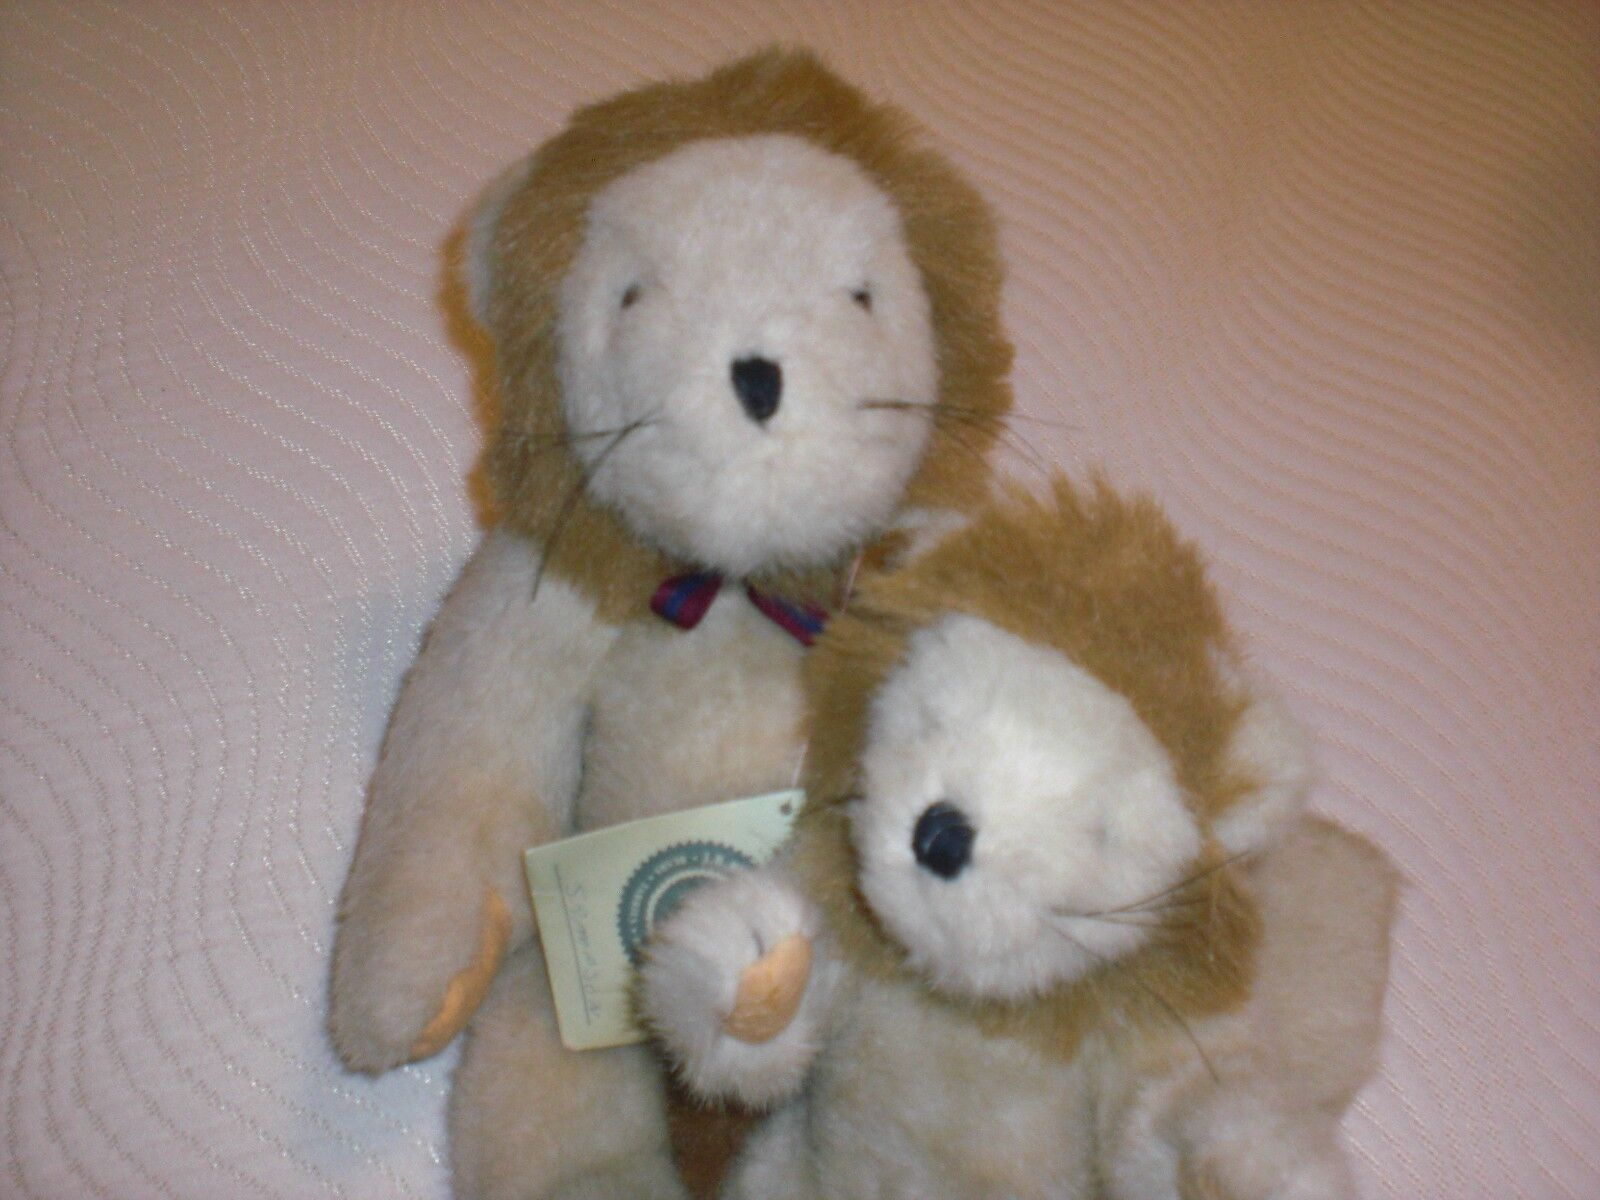 Lot of 2 RARE Vintage BOYDS Lions Leopold and Sampson One With Tags